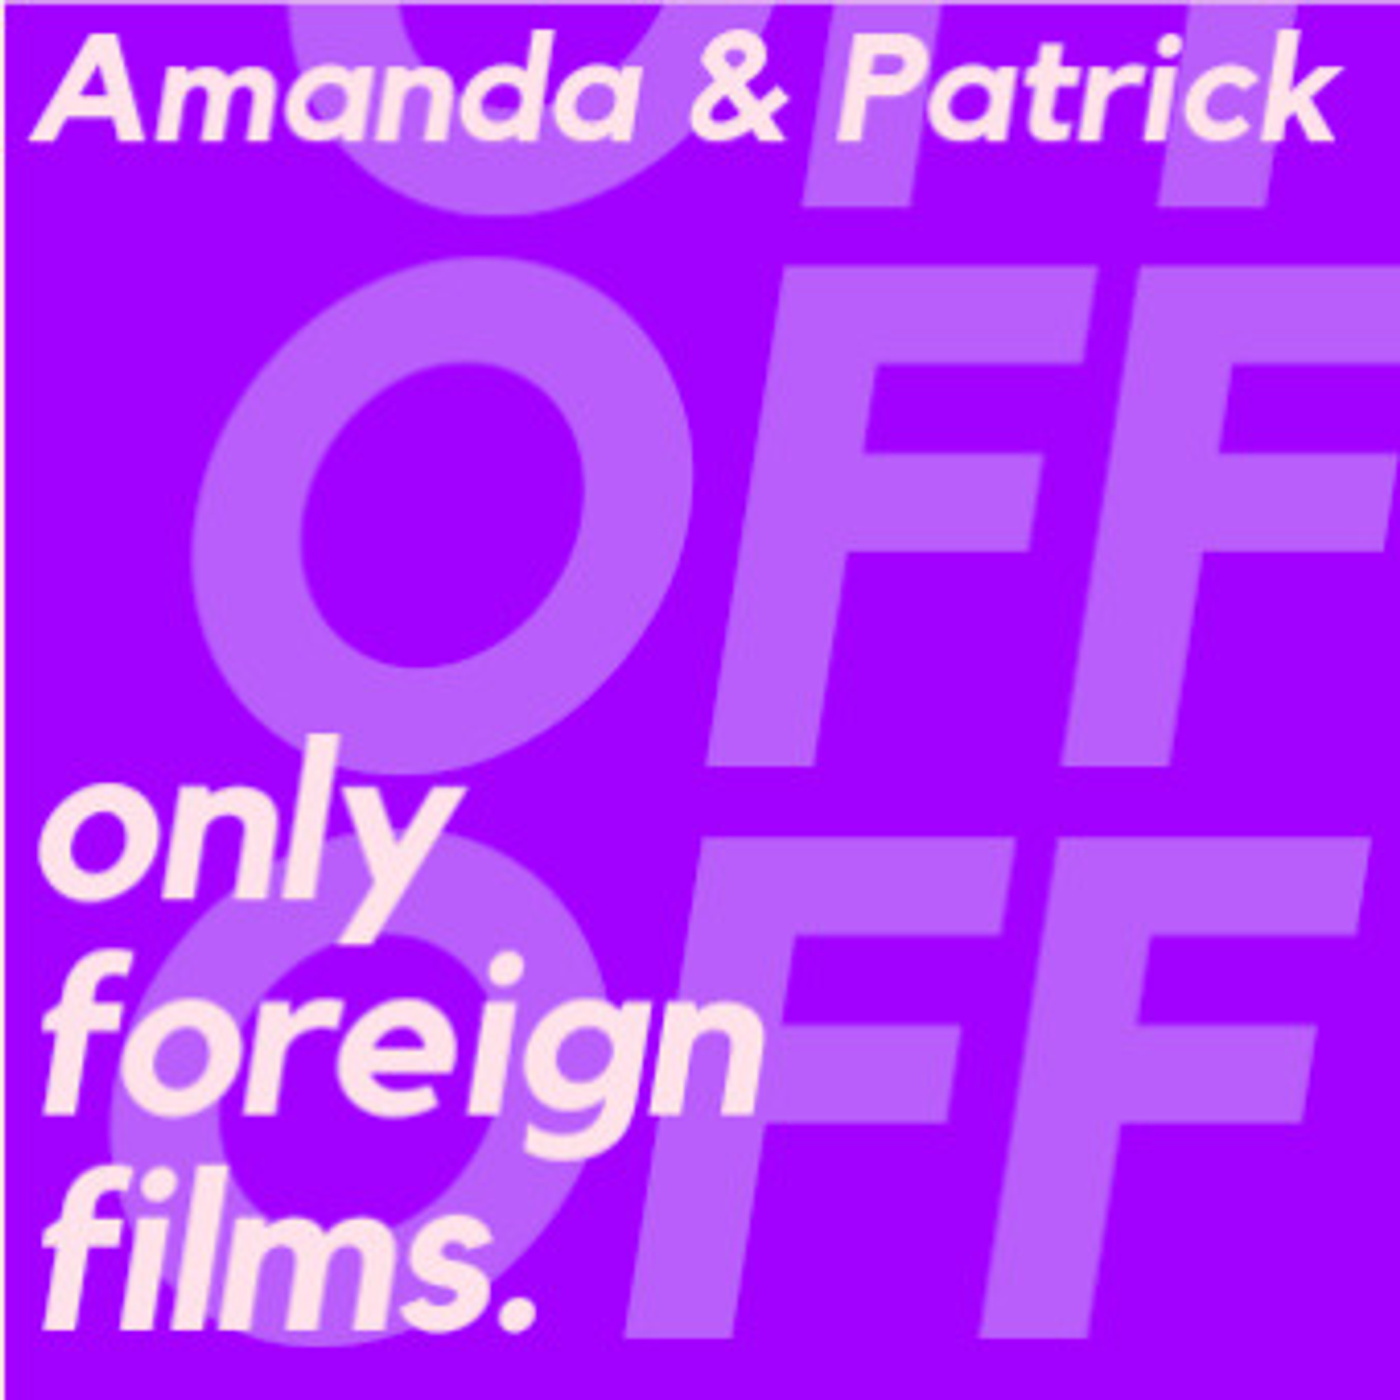 only foreign films.